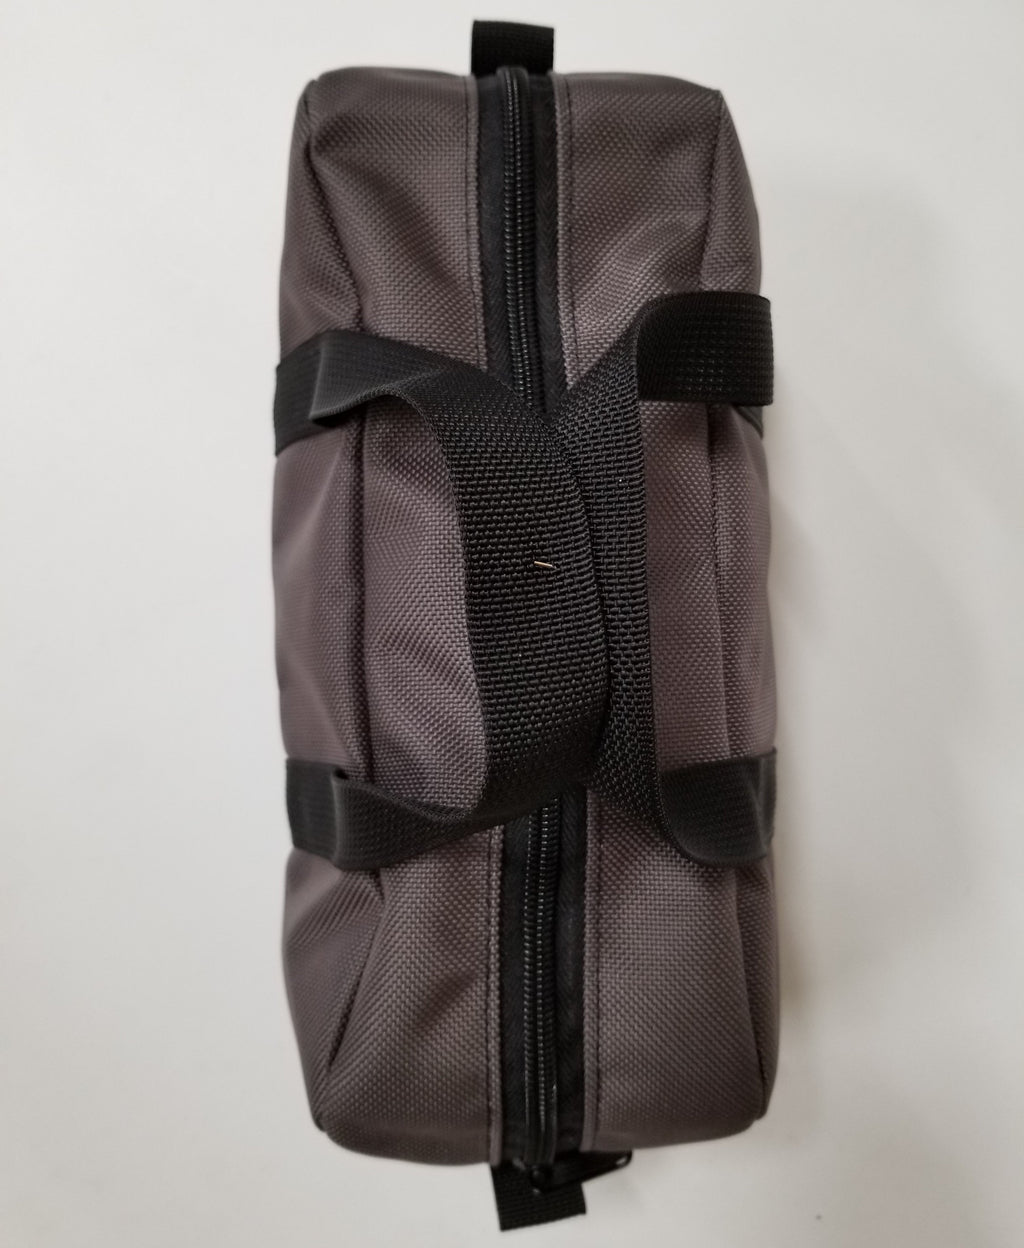 Grey Mini Duffle with Black Webbing Straps Top View